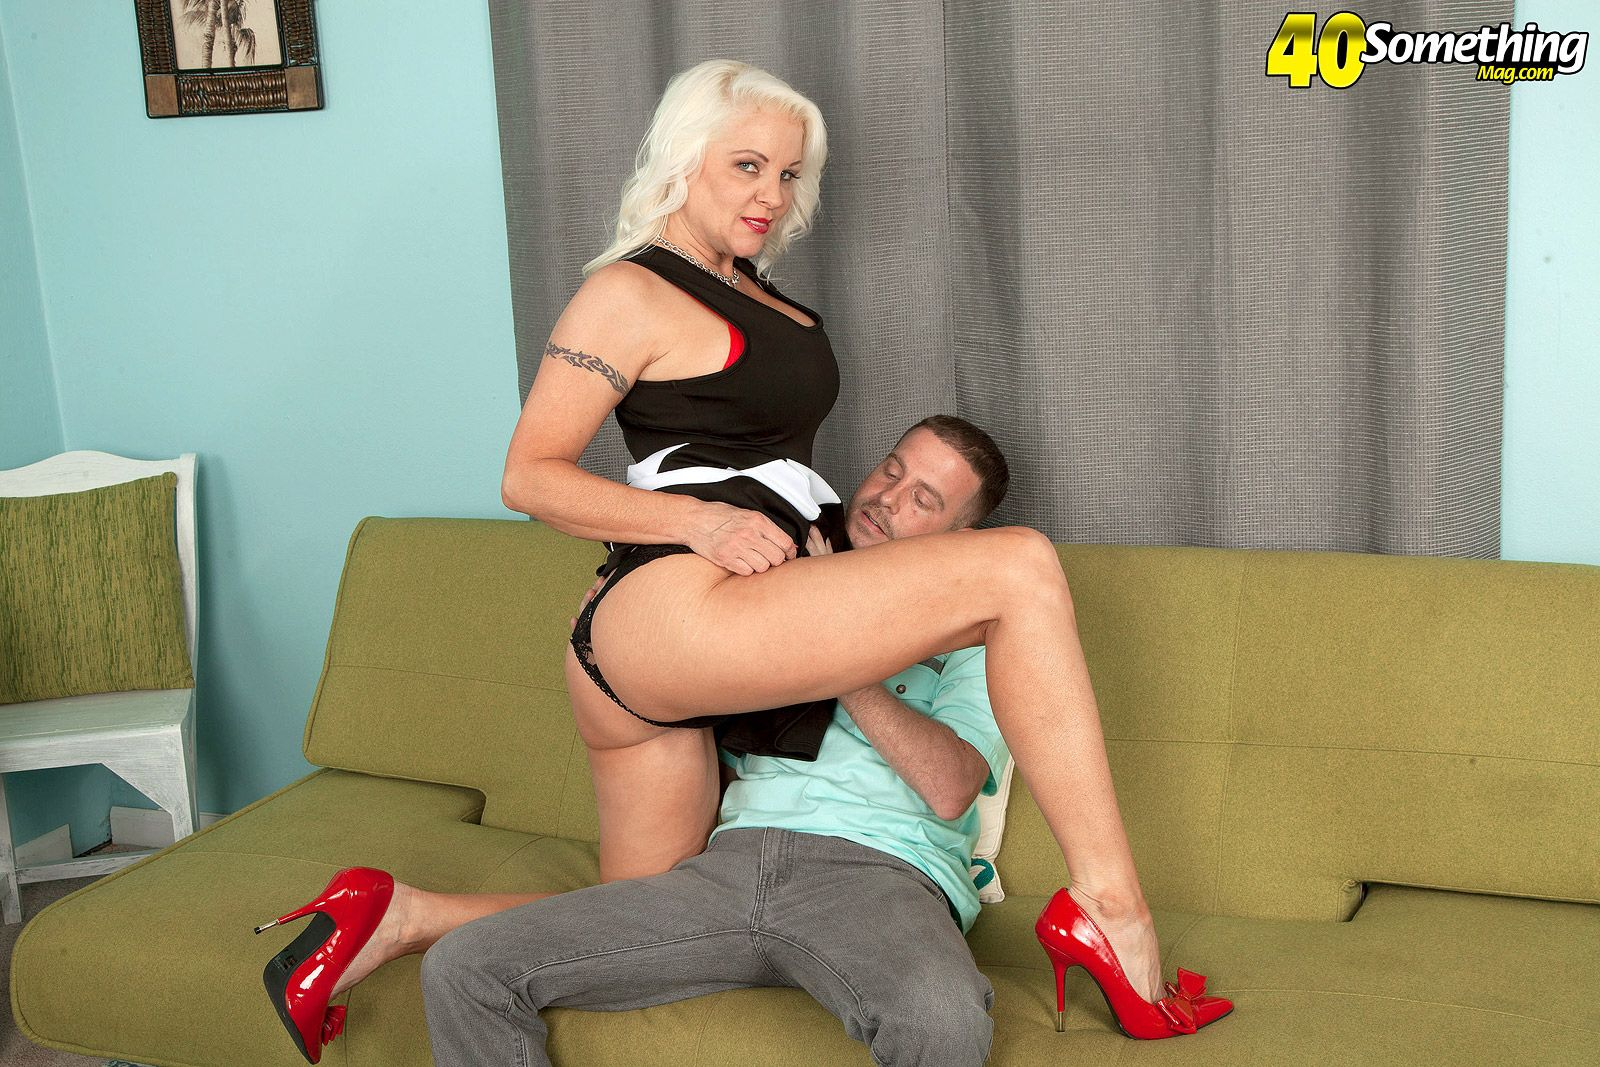 Over 60 lady with great tits and a firm ass seduces a younger man in red pumps